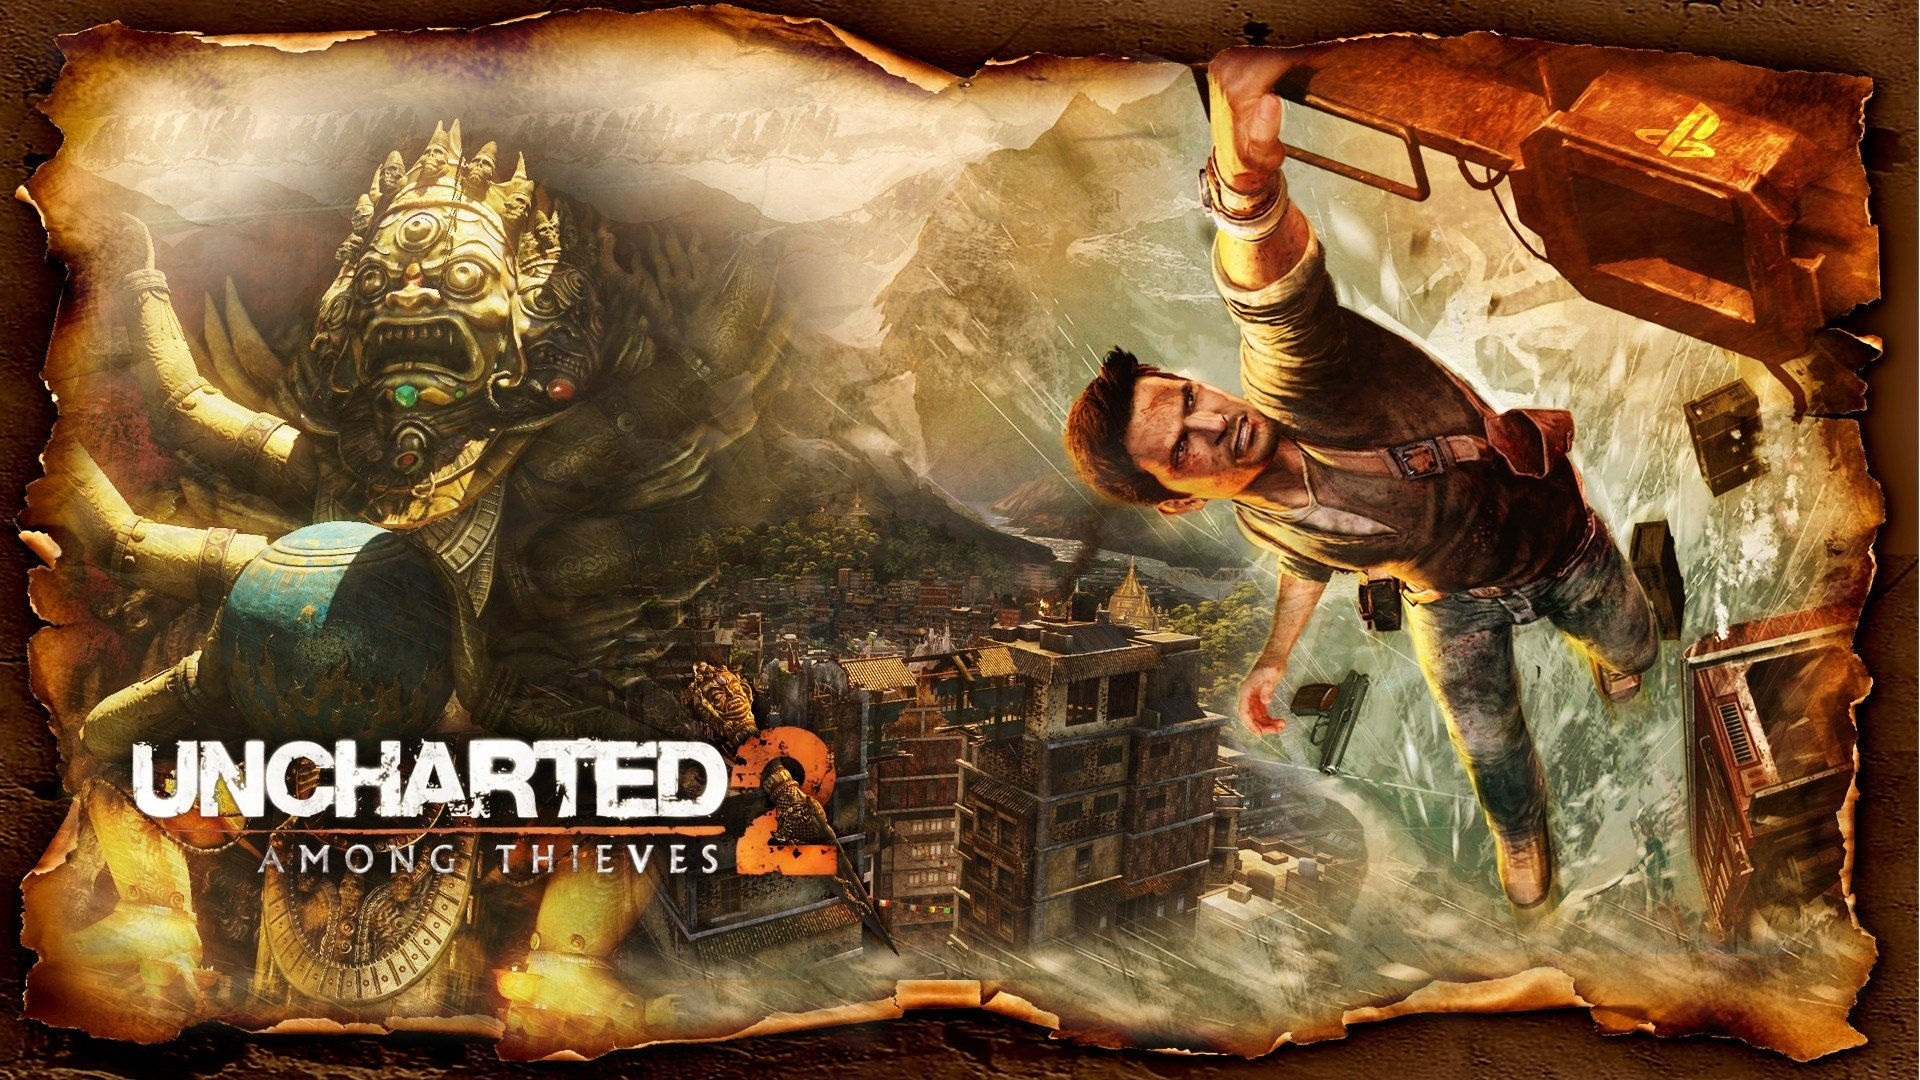 1080p uncharted 2 wallpaper